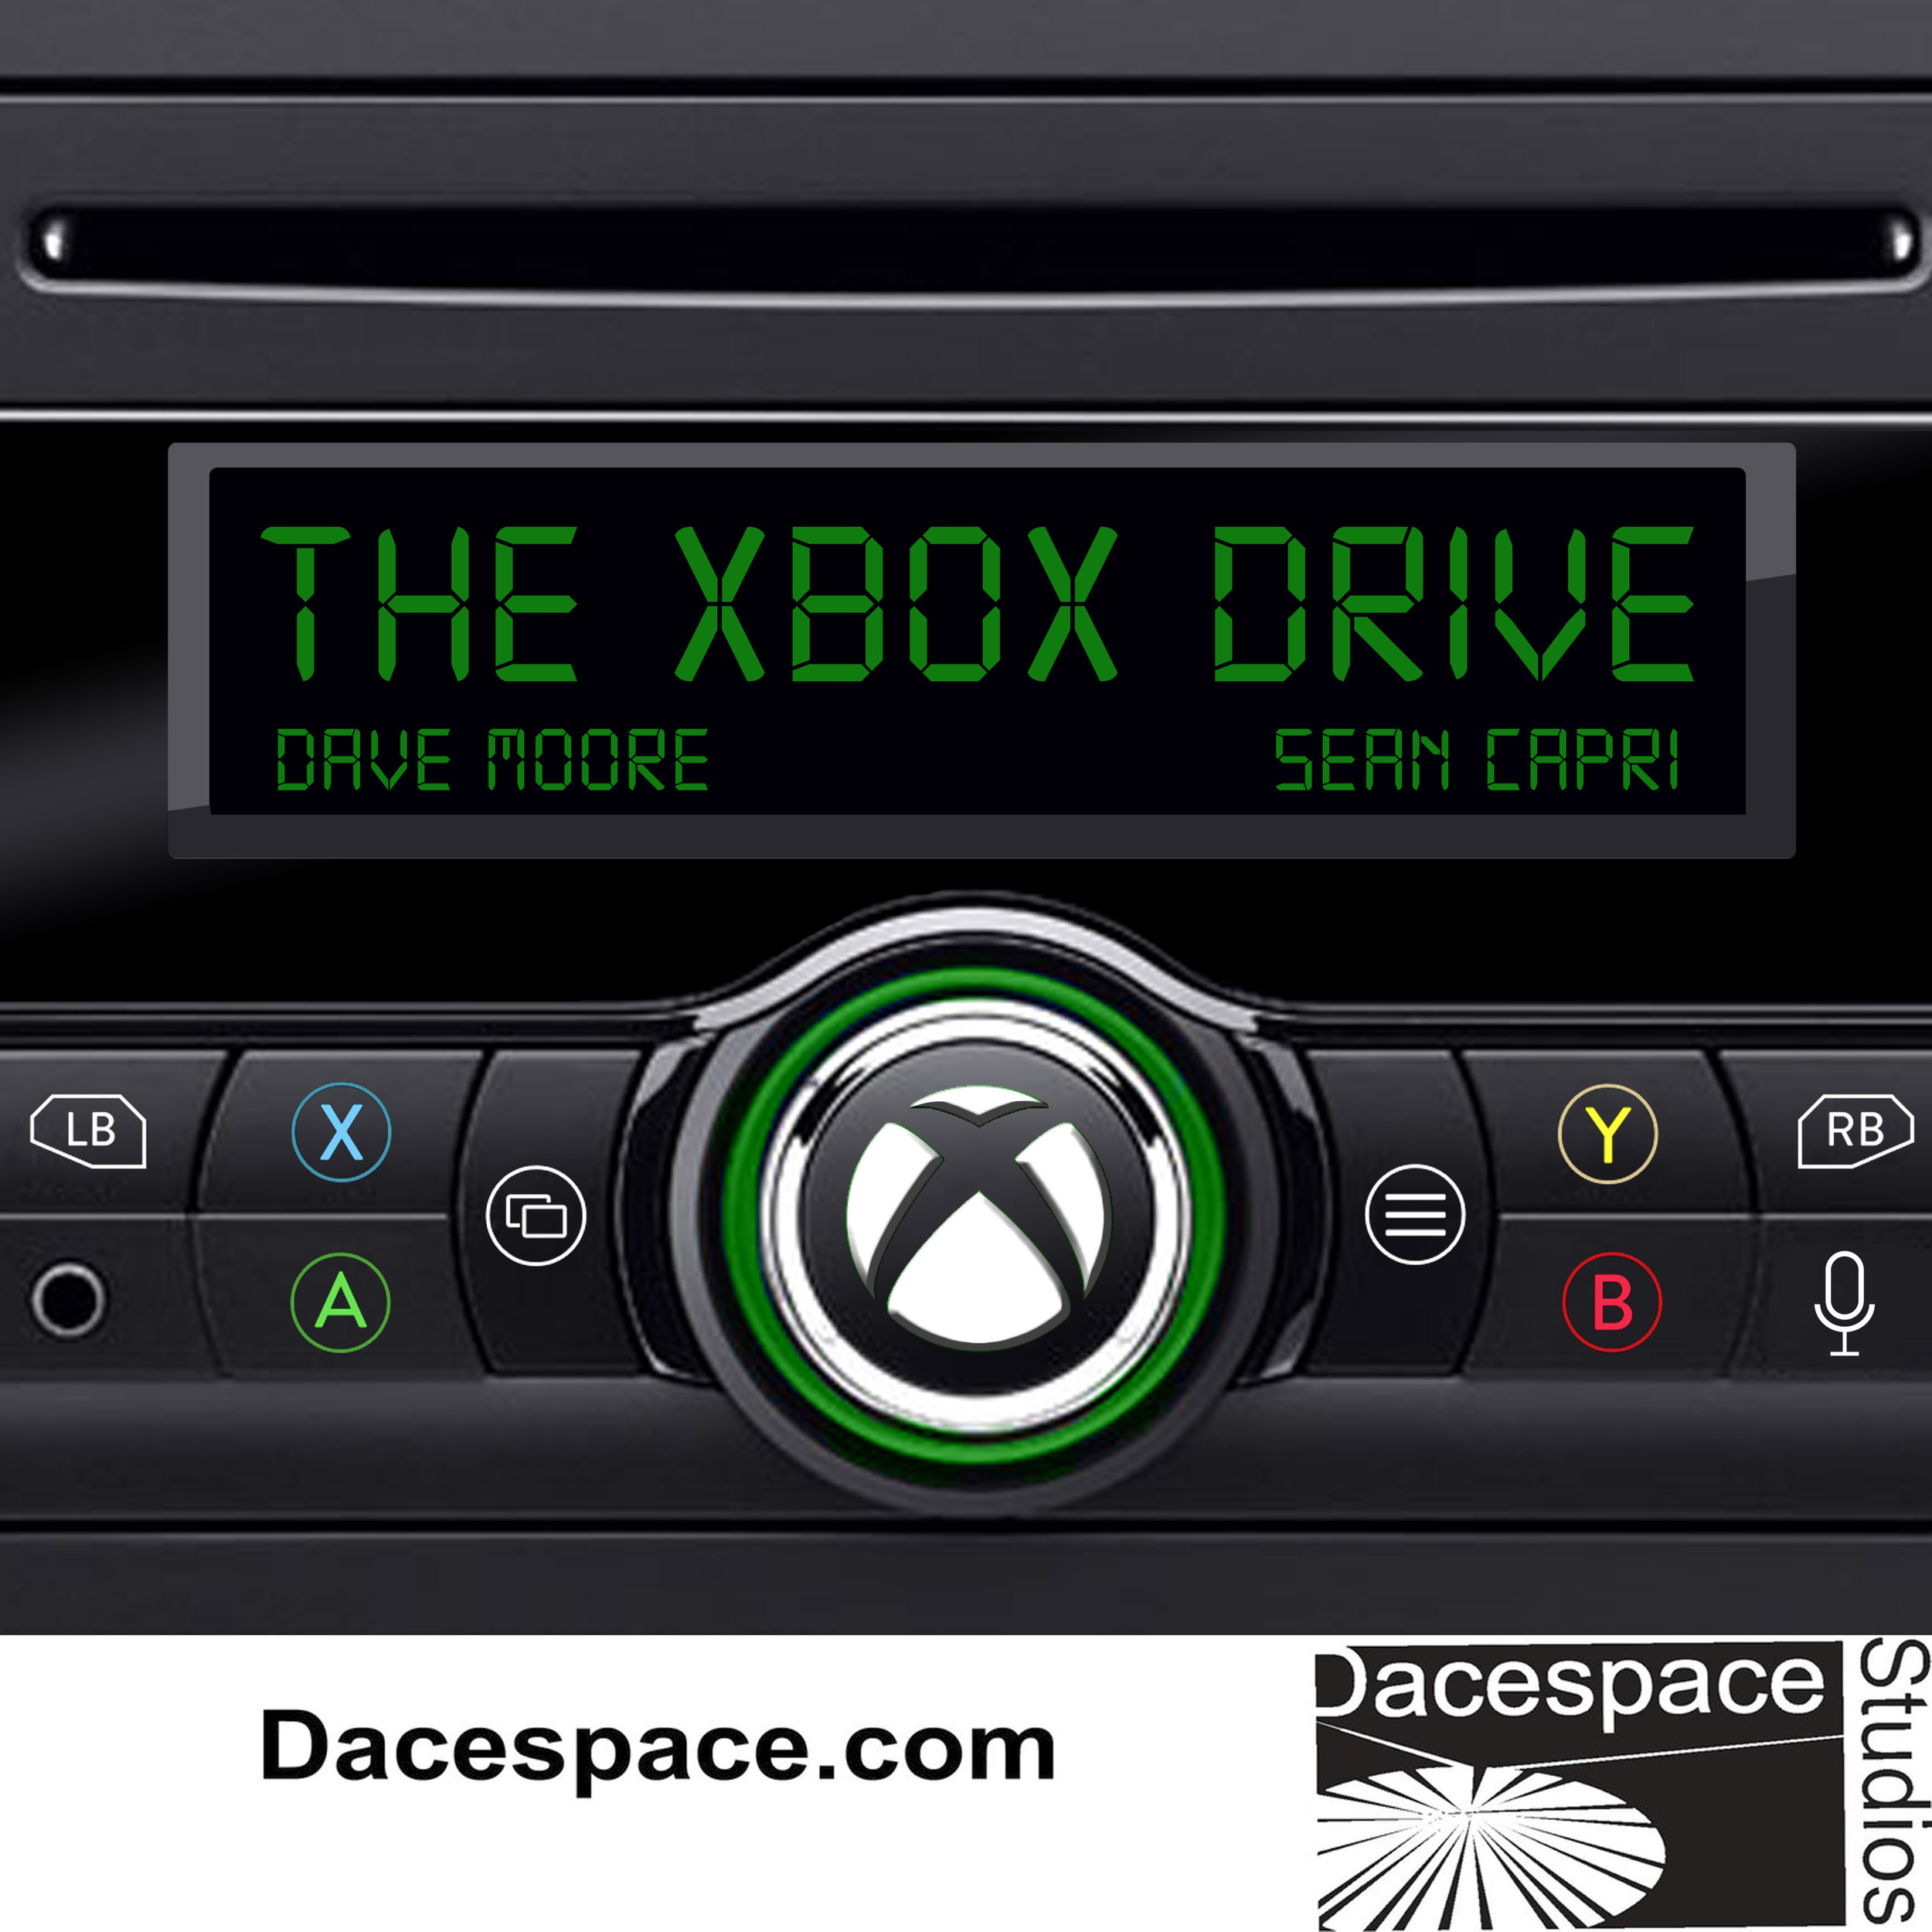 Dave Moore — The Xbox Drive — Forget Being Cool